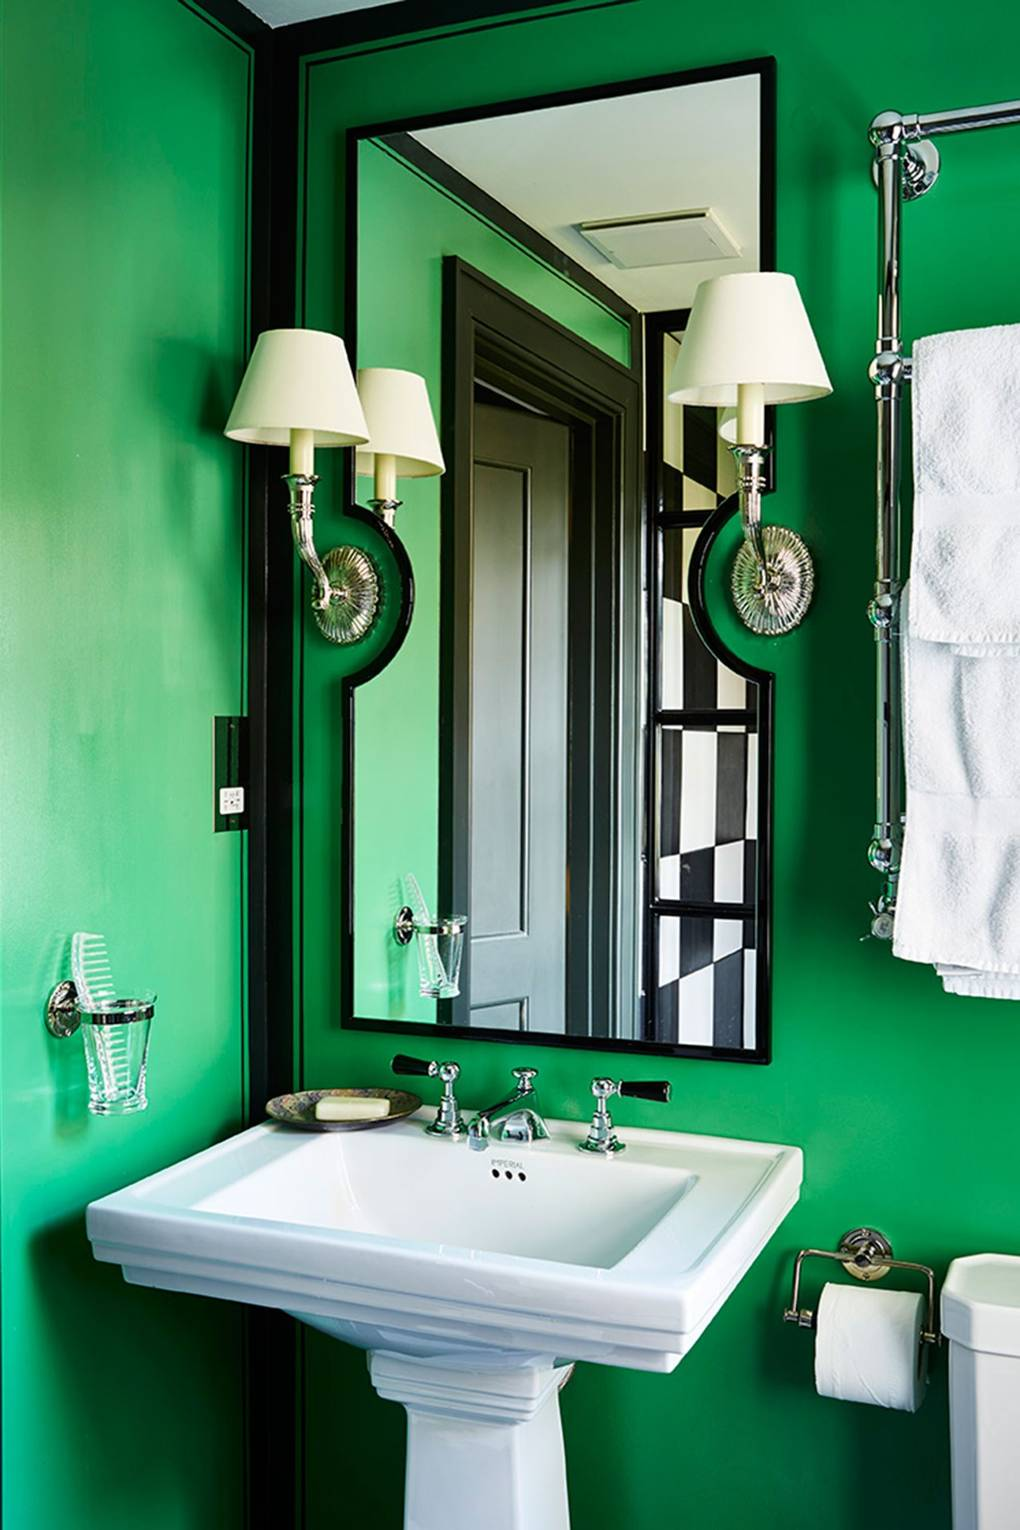 Green Paint Ideas | Wall Paint Colours | House & Garden on natural bathroom designs, red bathroom designs, grey bathroom designs, beige bathroom designs, yellow bathroom designs, hot pink bathroom designs, navy bathroom designs, electric blue bathroom designs, turquoise bathroom designs, fuschia bathroom designs, chocolate bathroom designs, purple bathroom designs, gold bathroom designs, rose pink bathroom designs, shared bathroom designs, espresso bathroom designs, green and brown bathroom designs, terracotta bathroom designs, mauve bathroom designs, white bathroom designs,